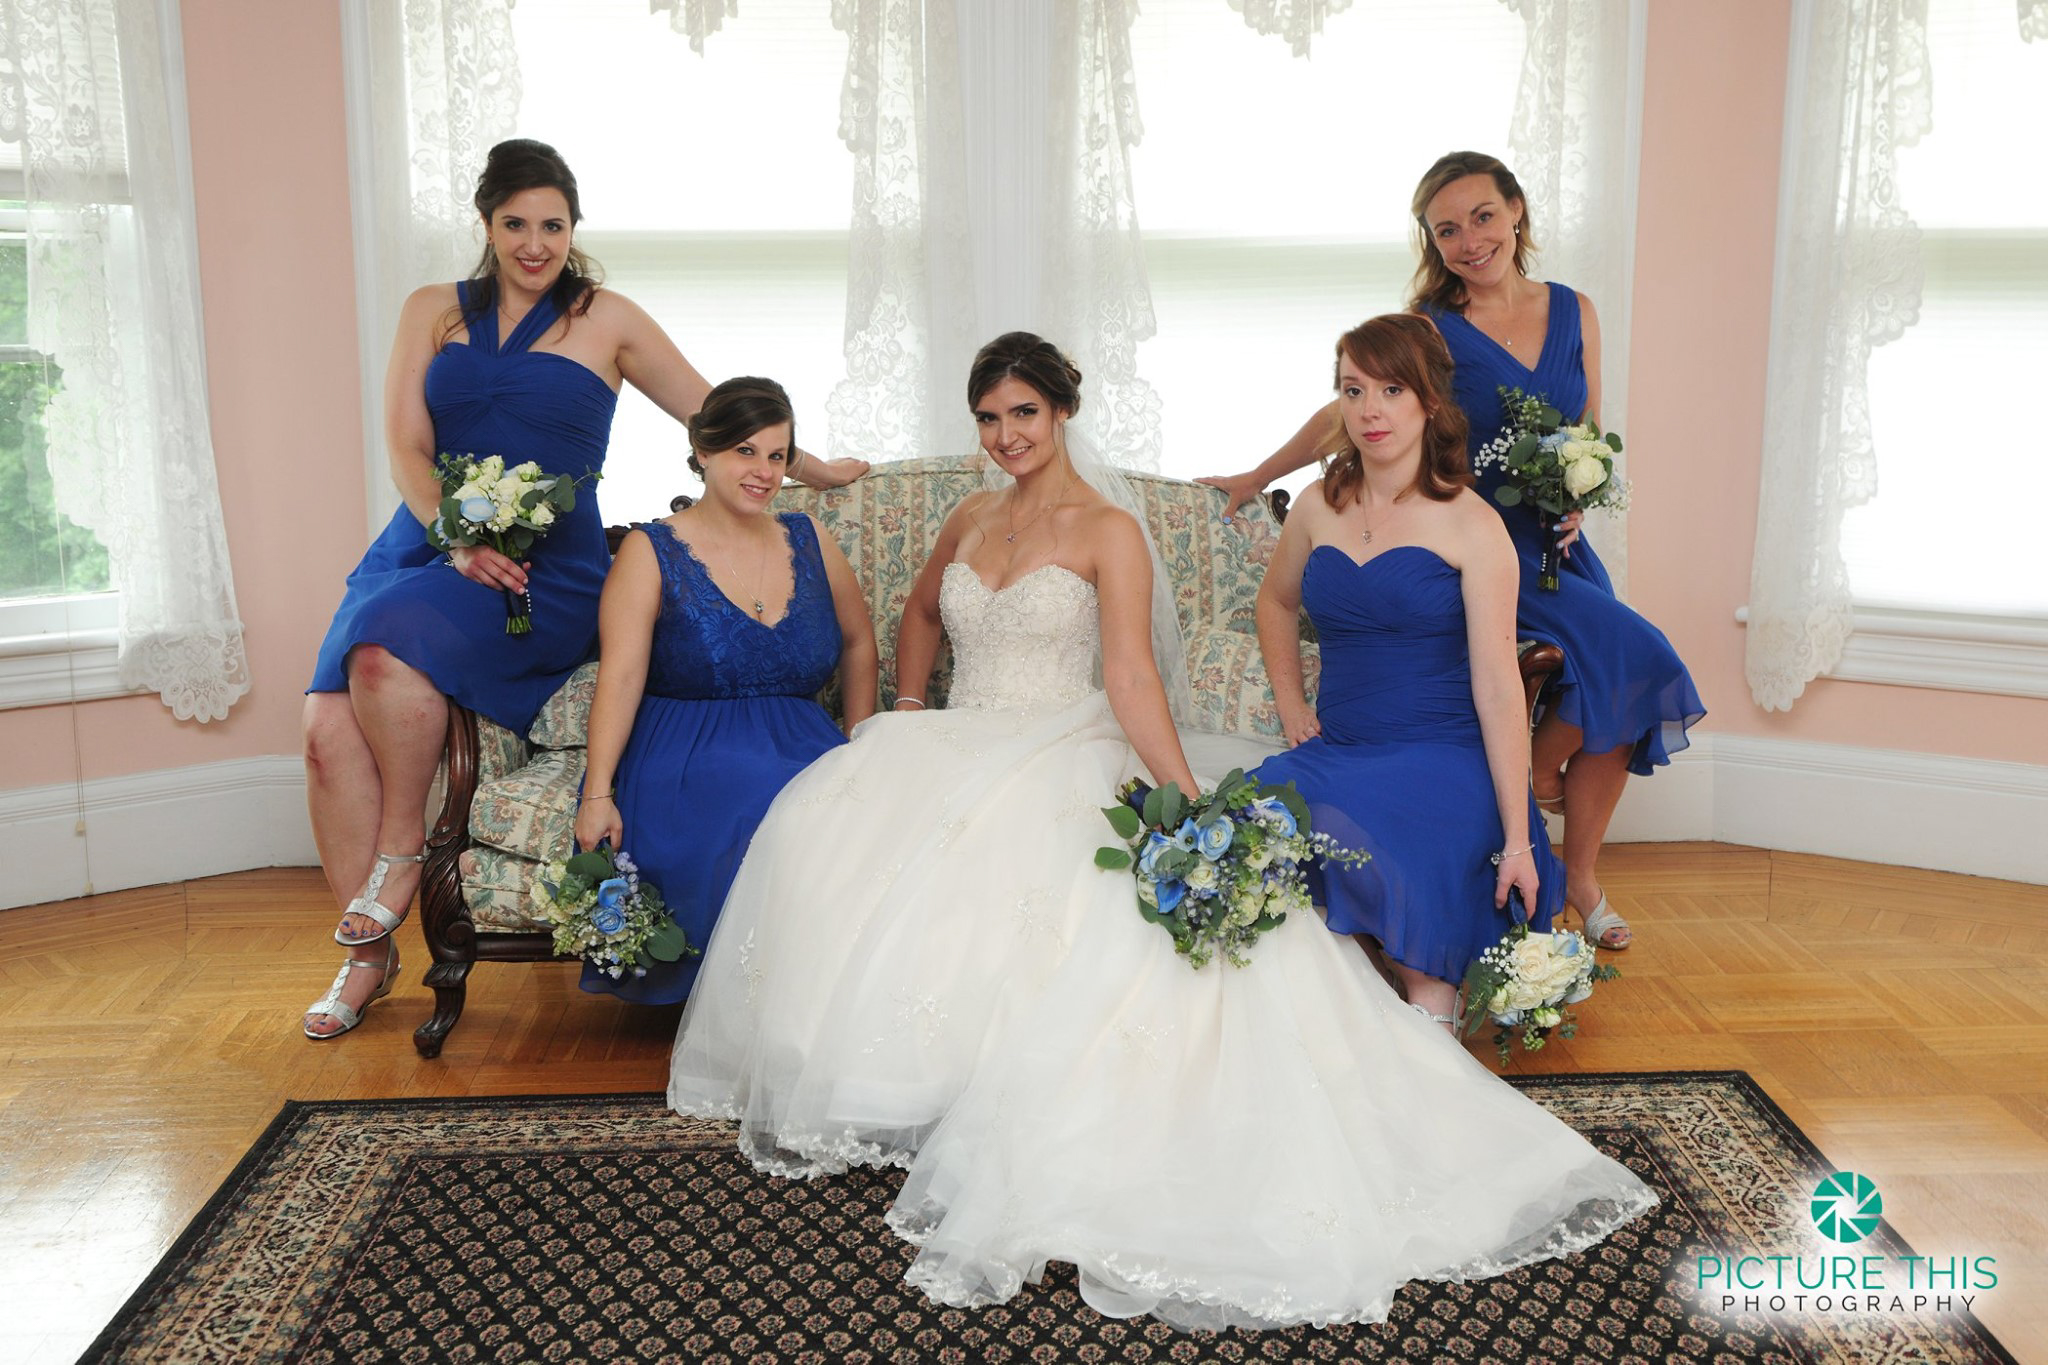 late-june-wedding-party-bride-sitting-with-bridesmaids